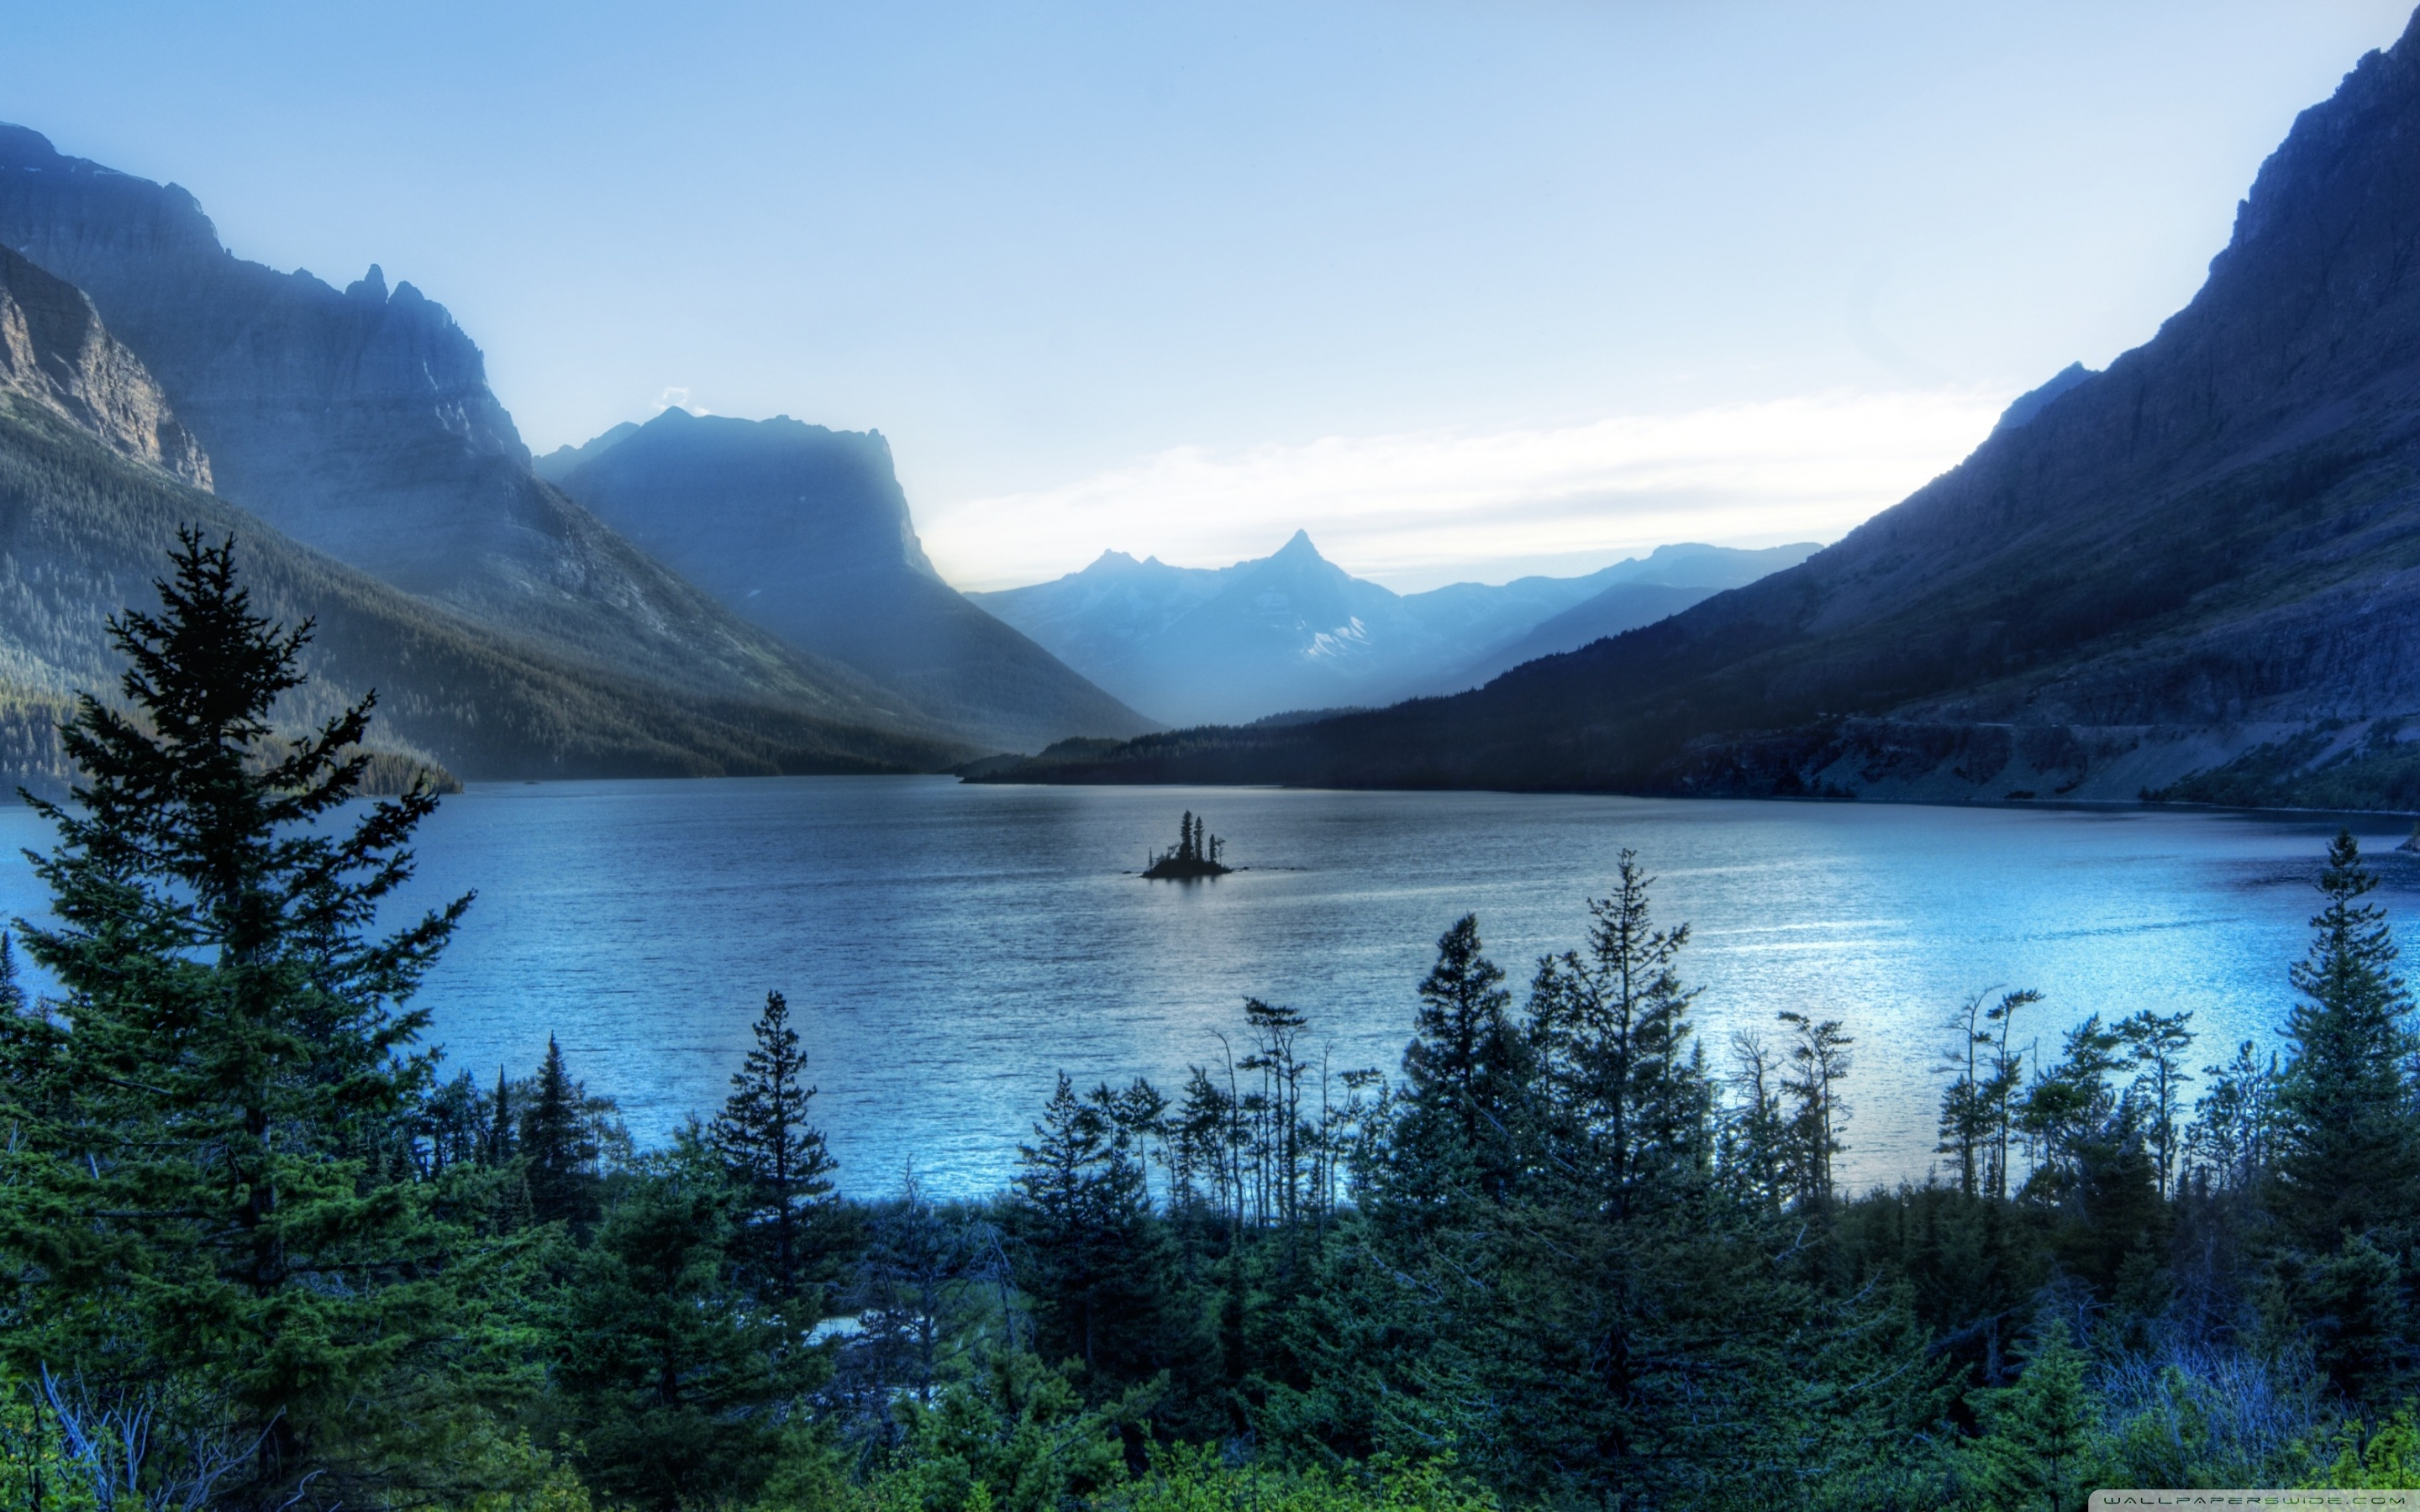 Free Download Morning At Glacier National Park 4k Hd Desktop